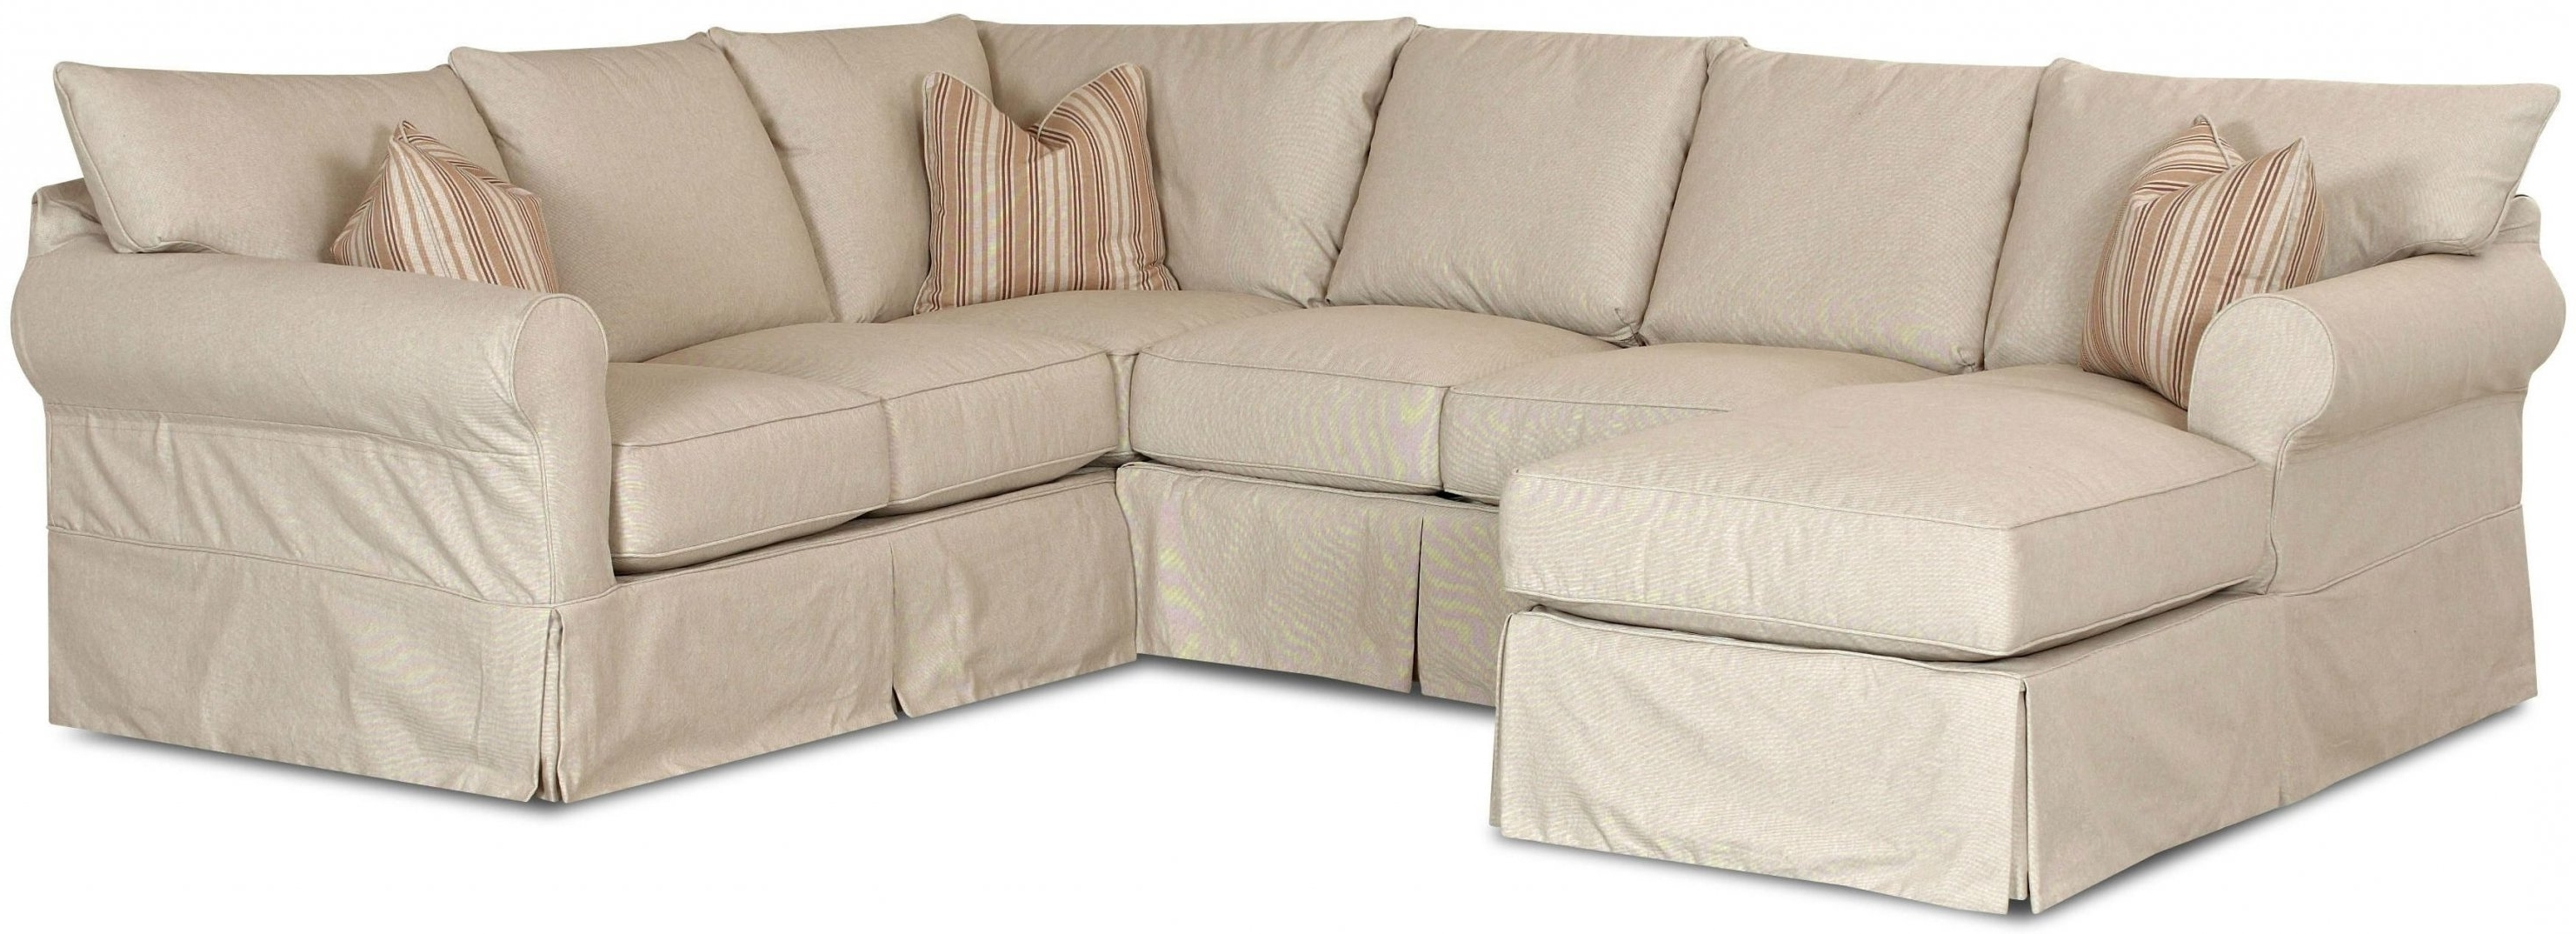 Latest Sectional Sofa Covers Http Ml2R Com Pinterest Chaise Lounge With Slipcovers For Sectional Sofa With Chaise (View 2 of 15)